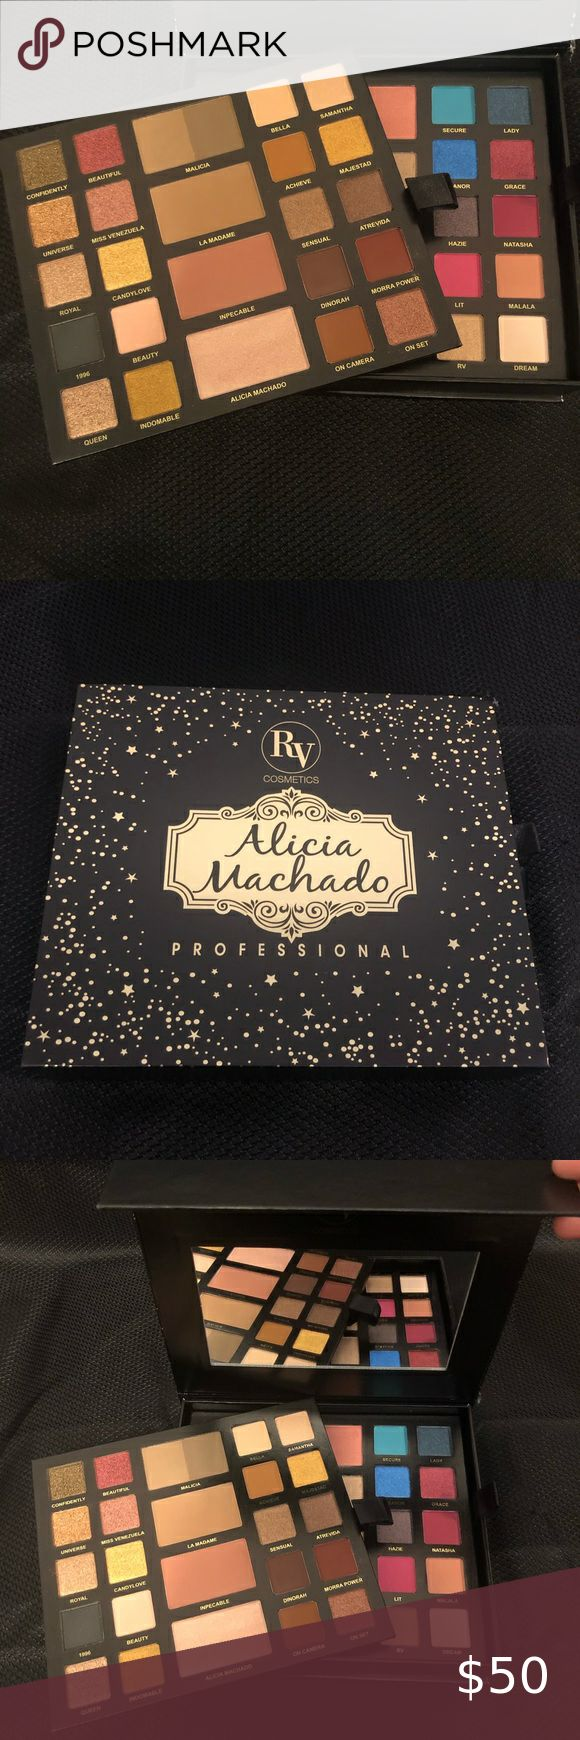 RV cosmetics palette Alicia Machado Receive a free